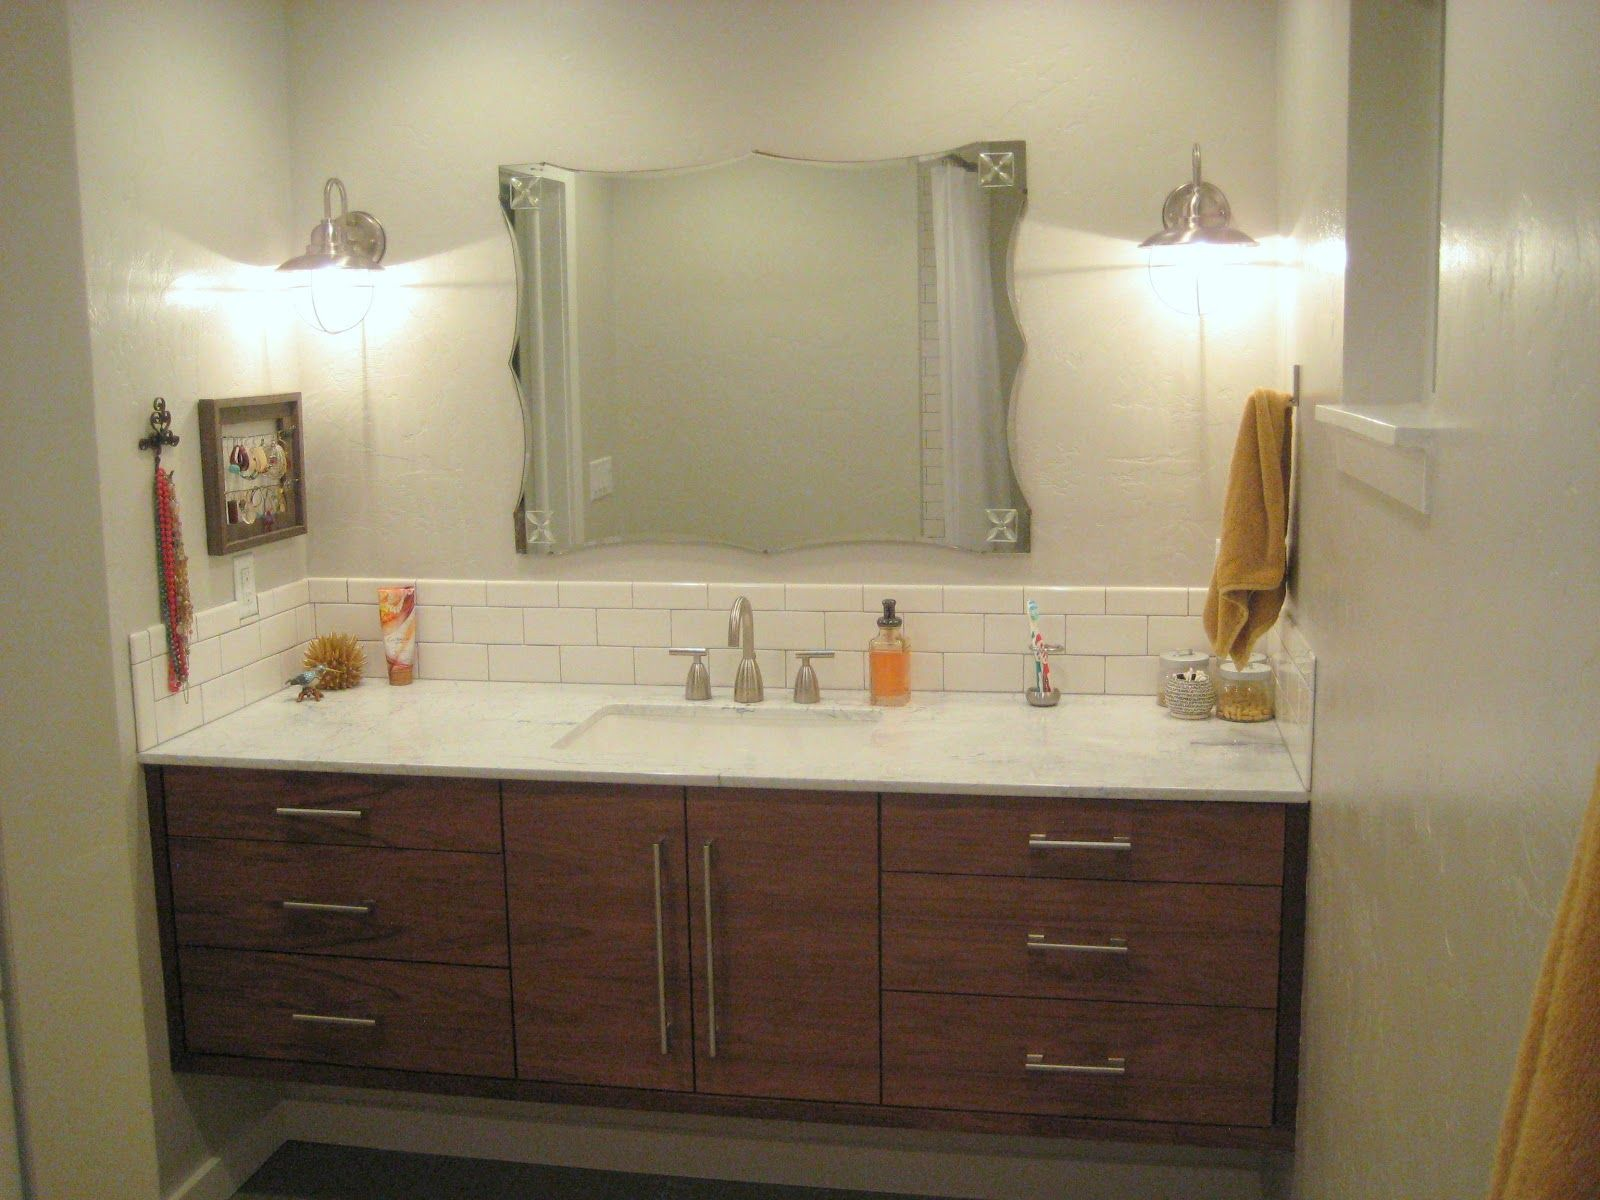 Narrow Bathroom Vanity With Charming Narrow Bathroom Vanities With Single Sink And Unique Beveled Mirror Shape Design